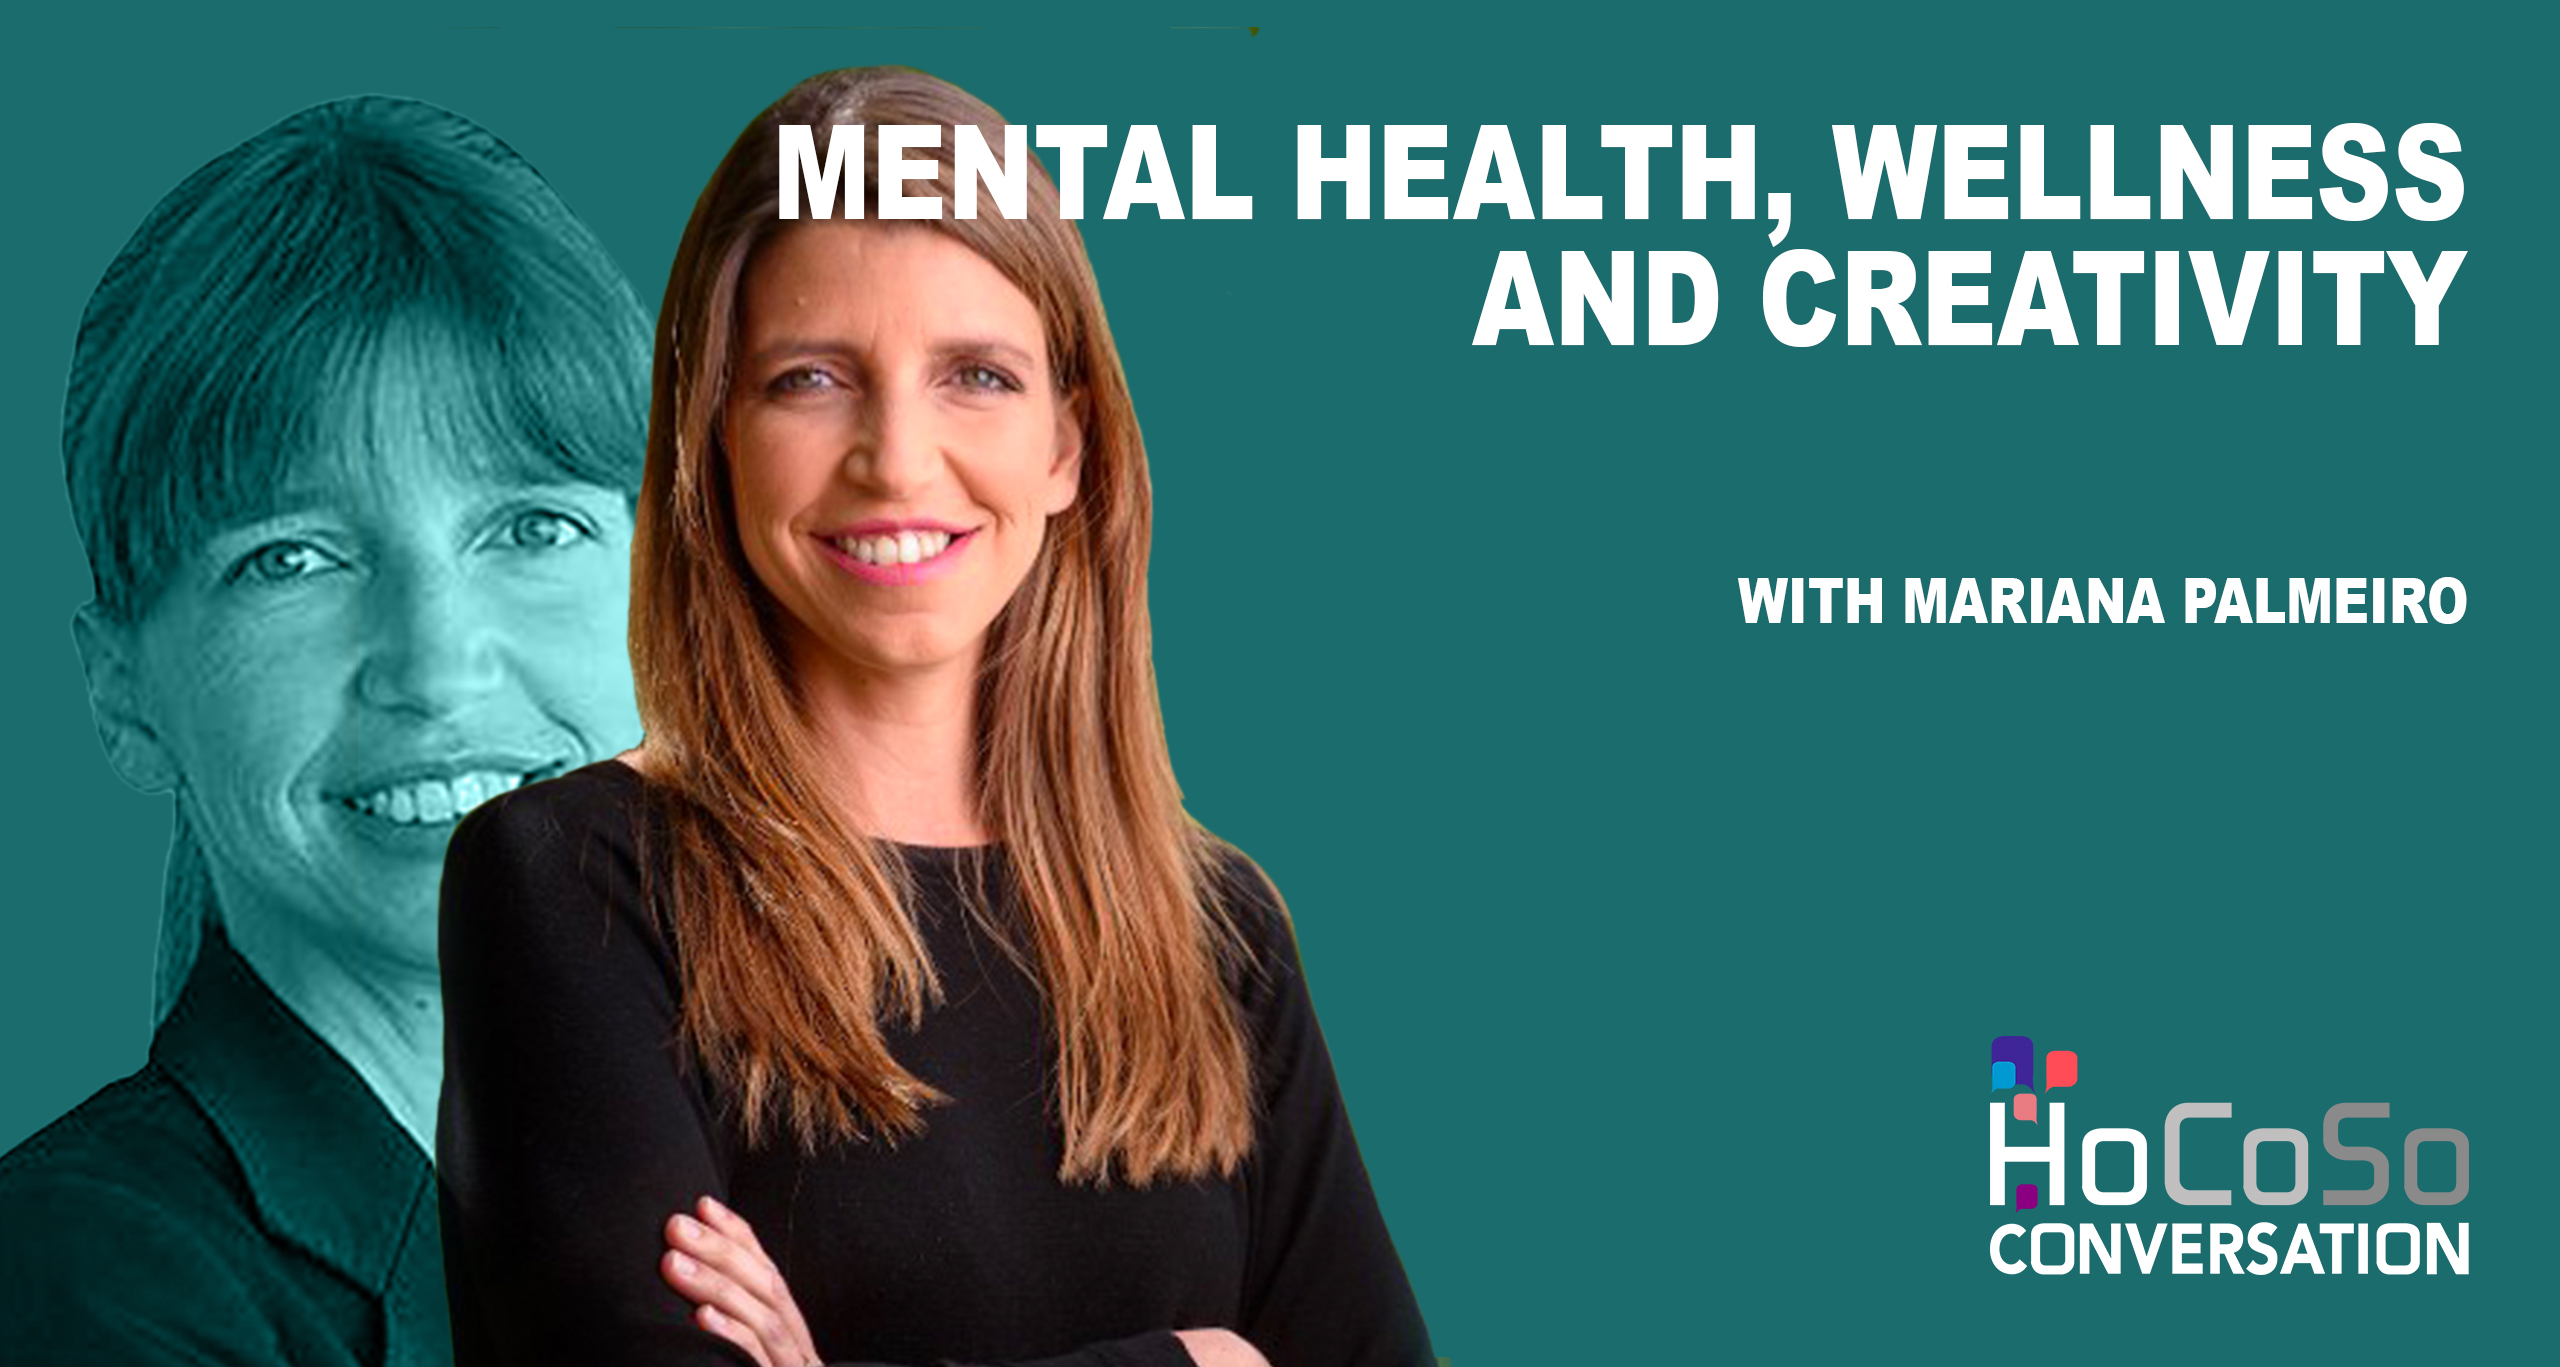 Mental health, wellness and wellbeing and creativity - HoCoSo CONVERSATION - with Mariana Palmeiro